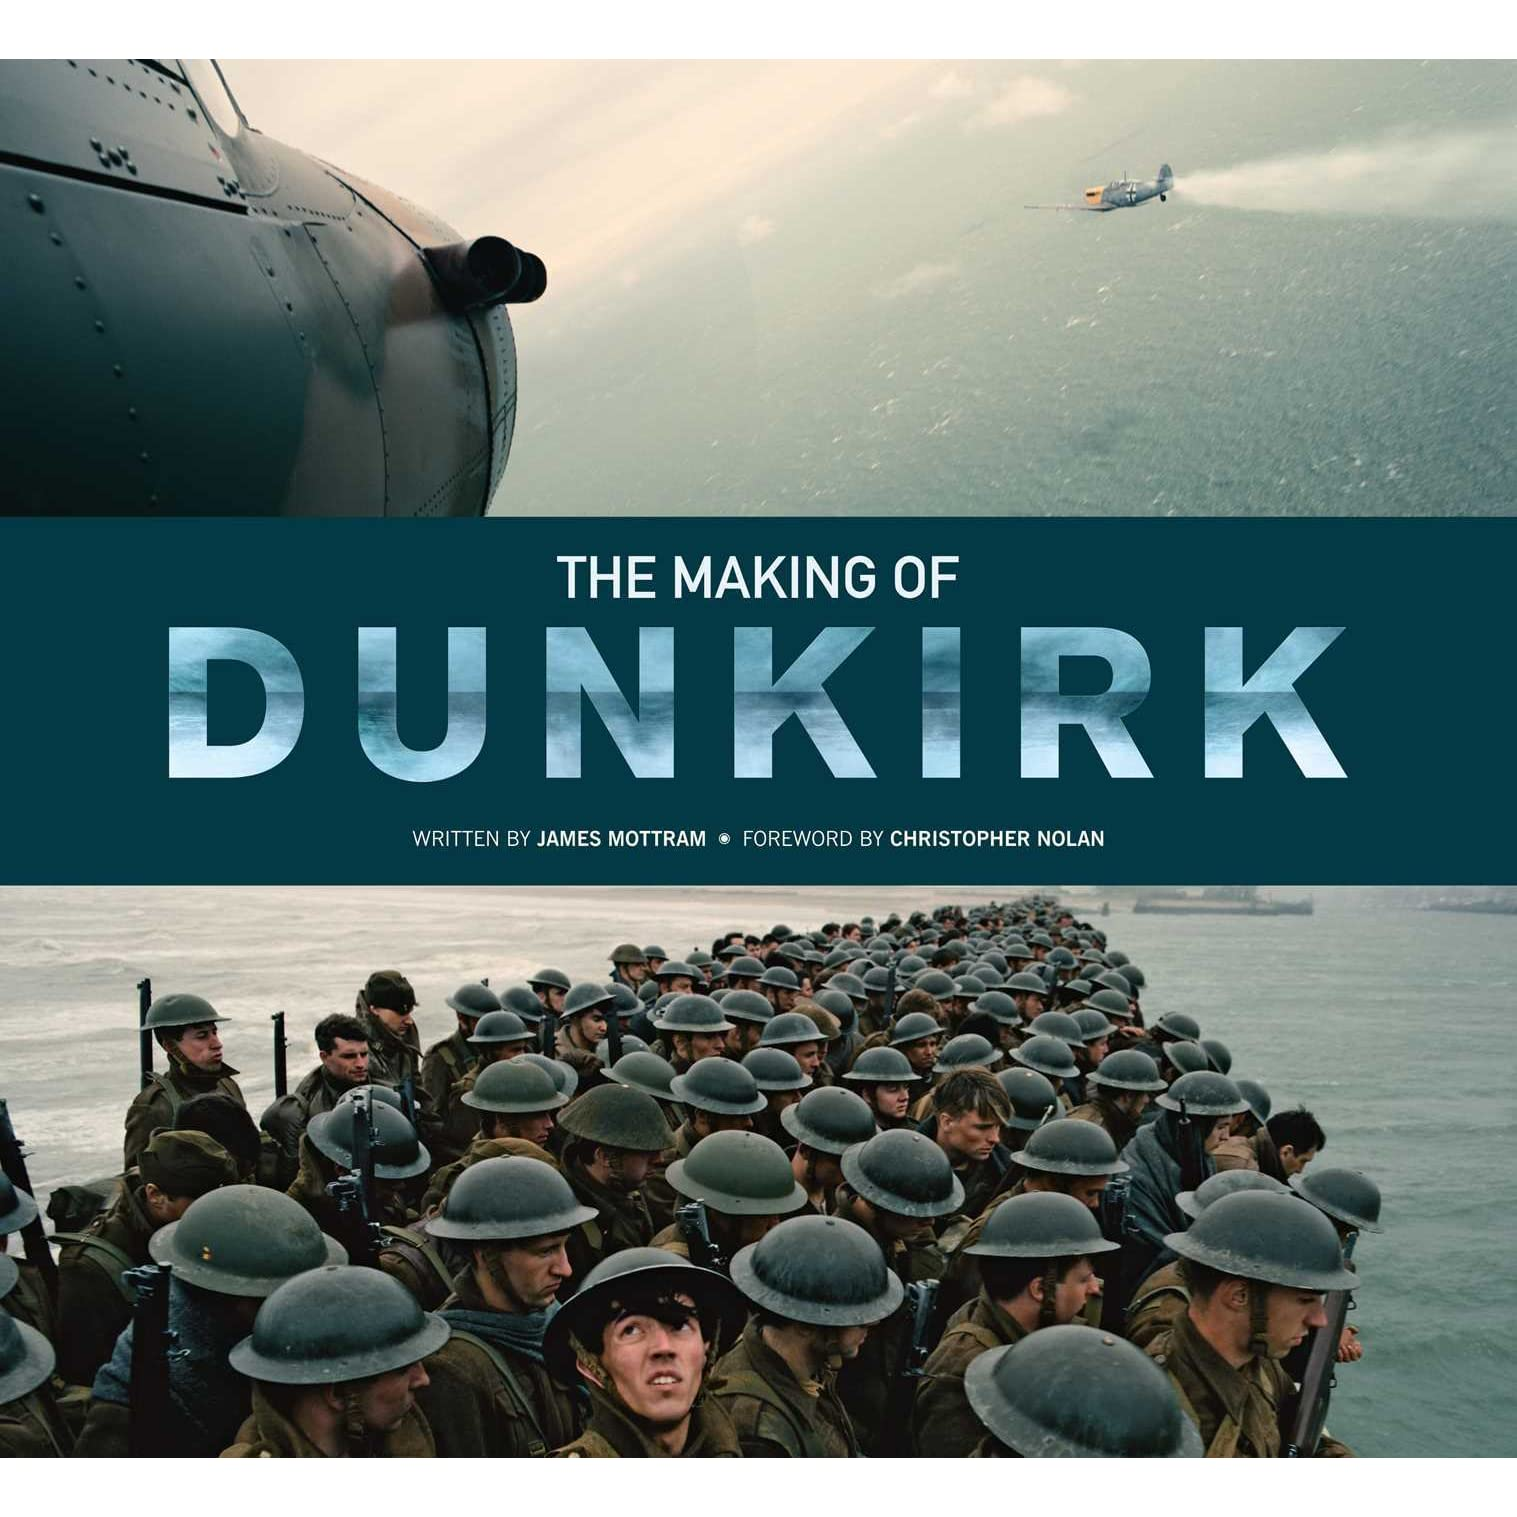 The Making of Dunkirk by James Mottram